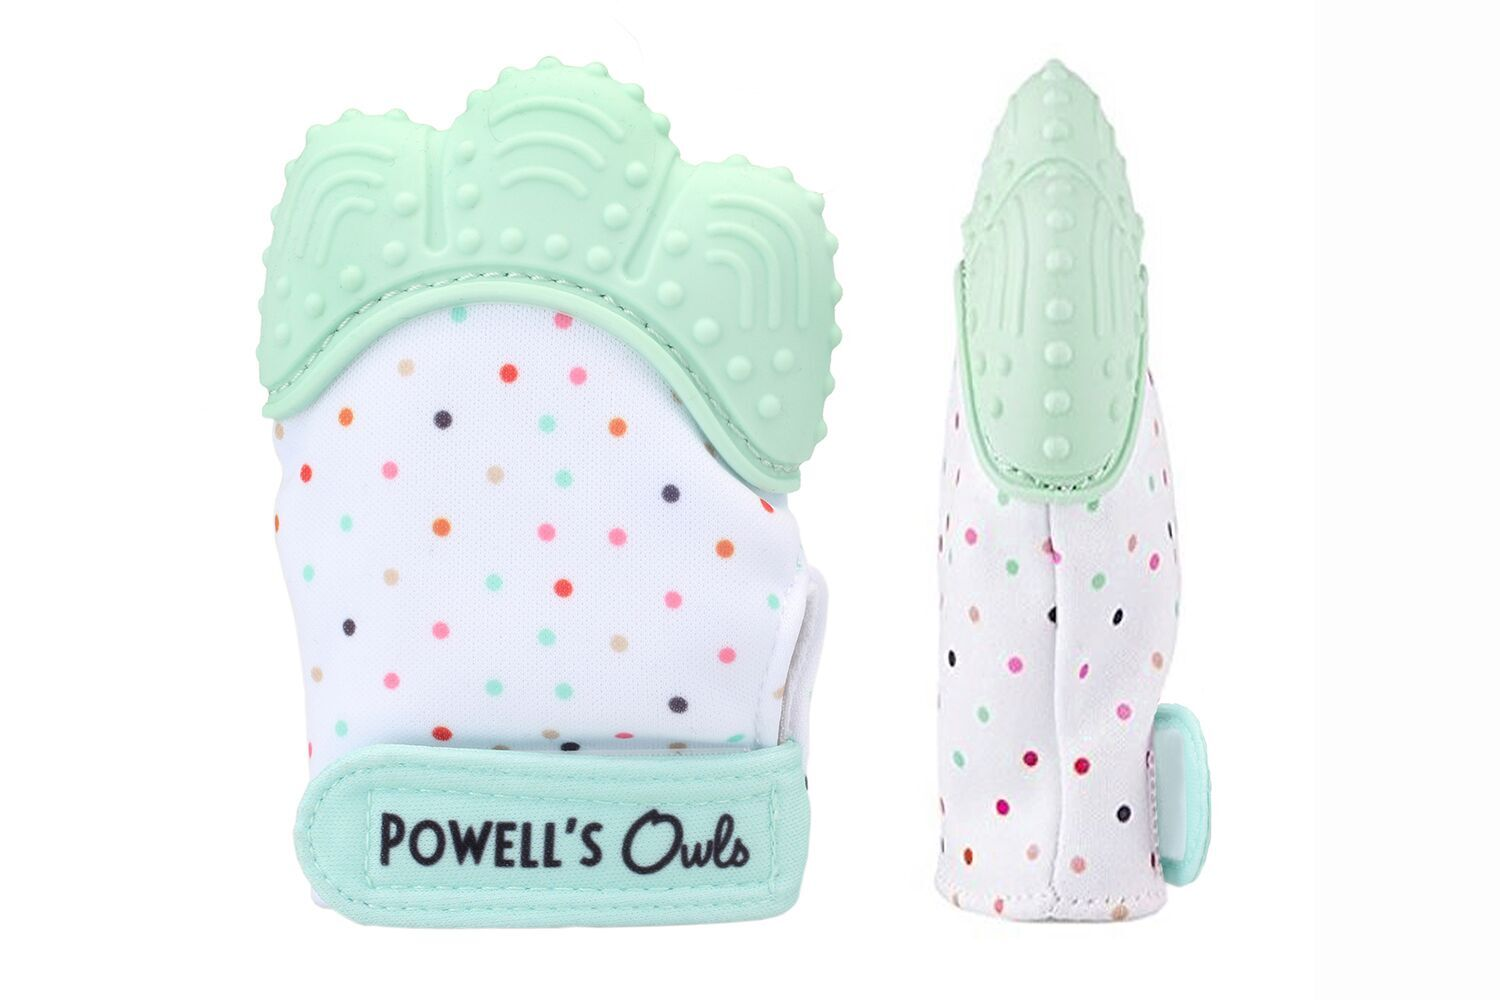 Powell's Owls Baby Teething Mitten